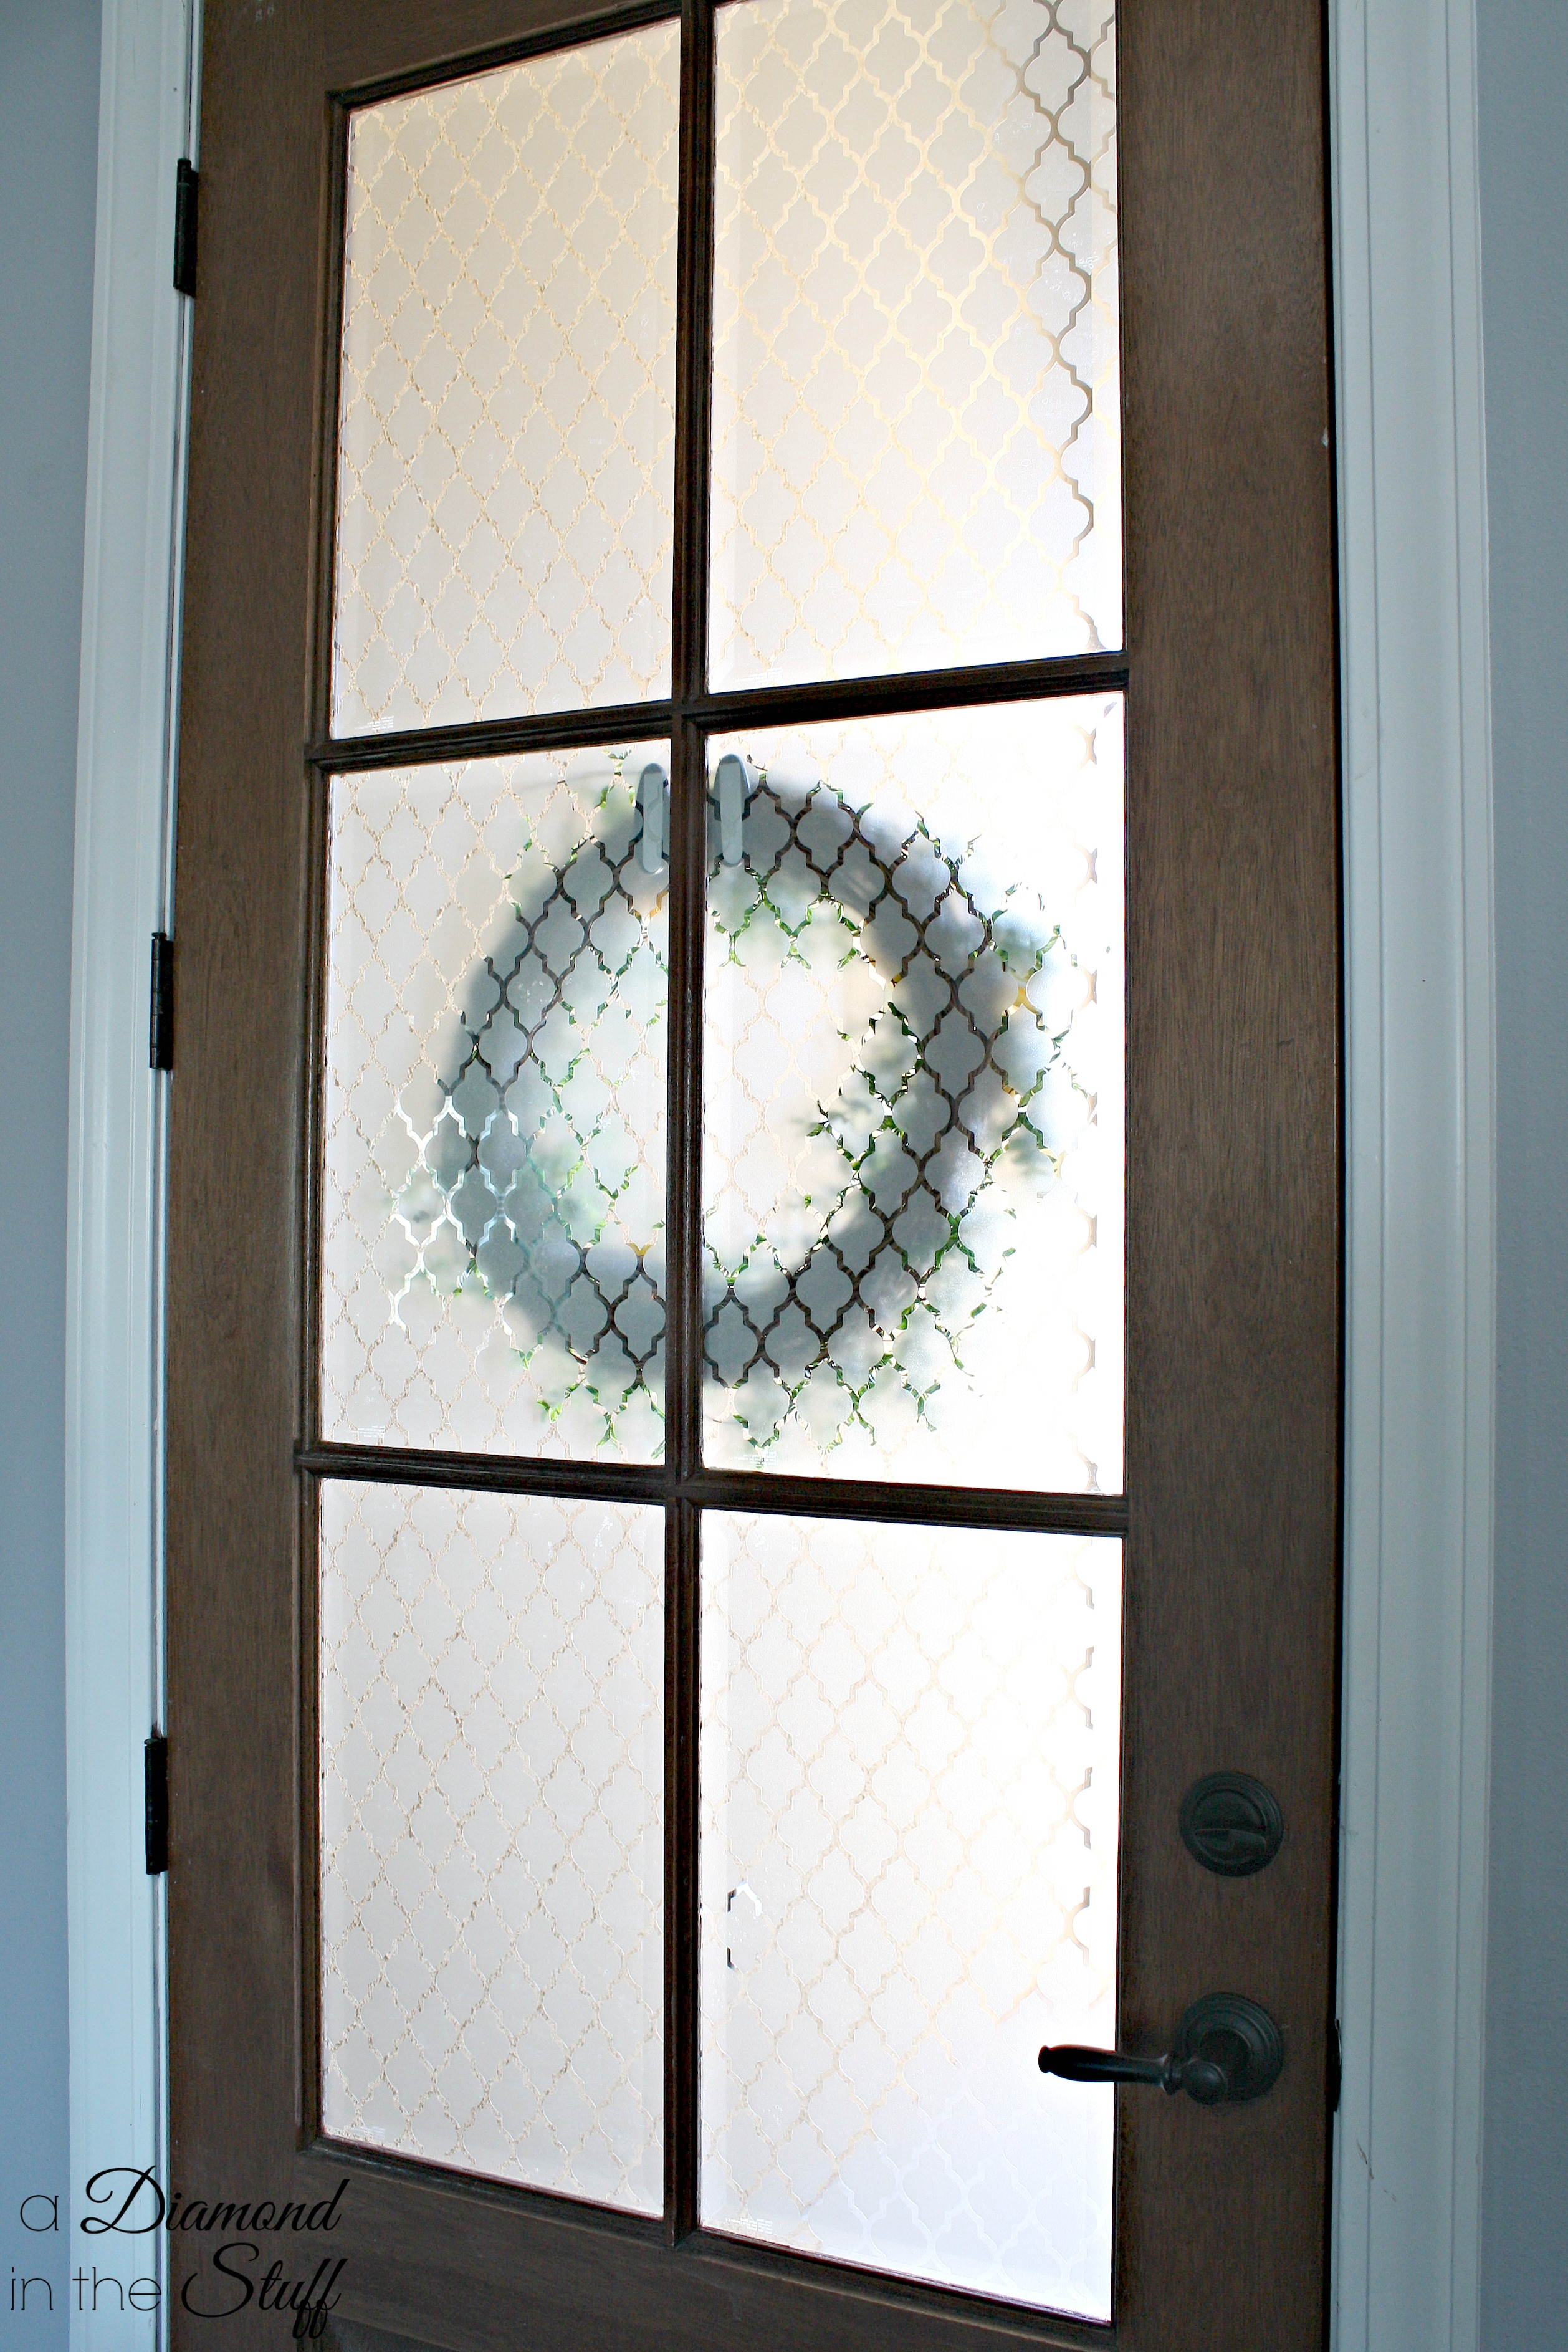 3774 #7C6F4F Faux Etched Glass Front Door image Front Doors With Frosted Glass 38732516